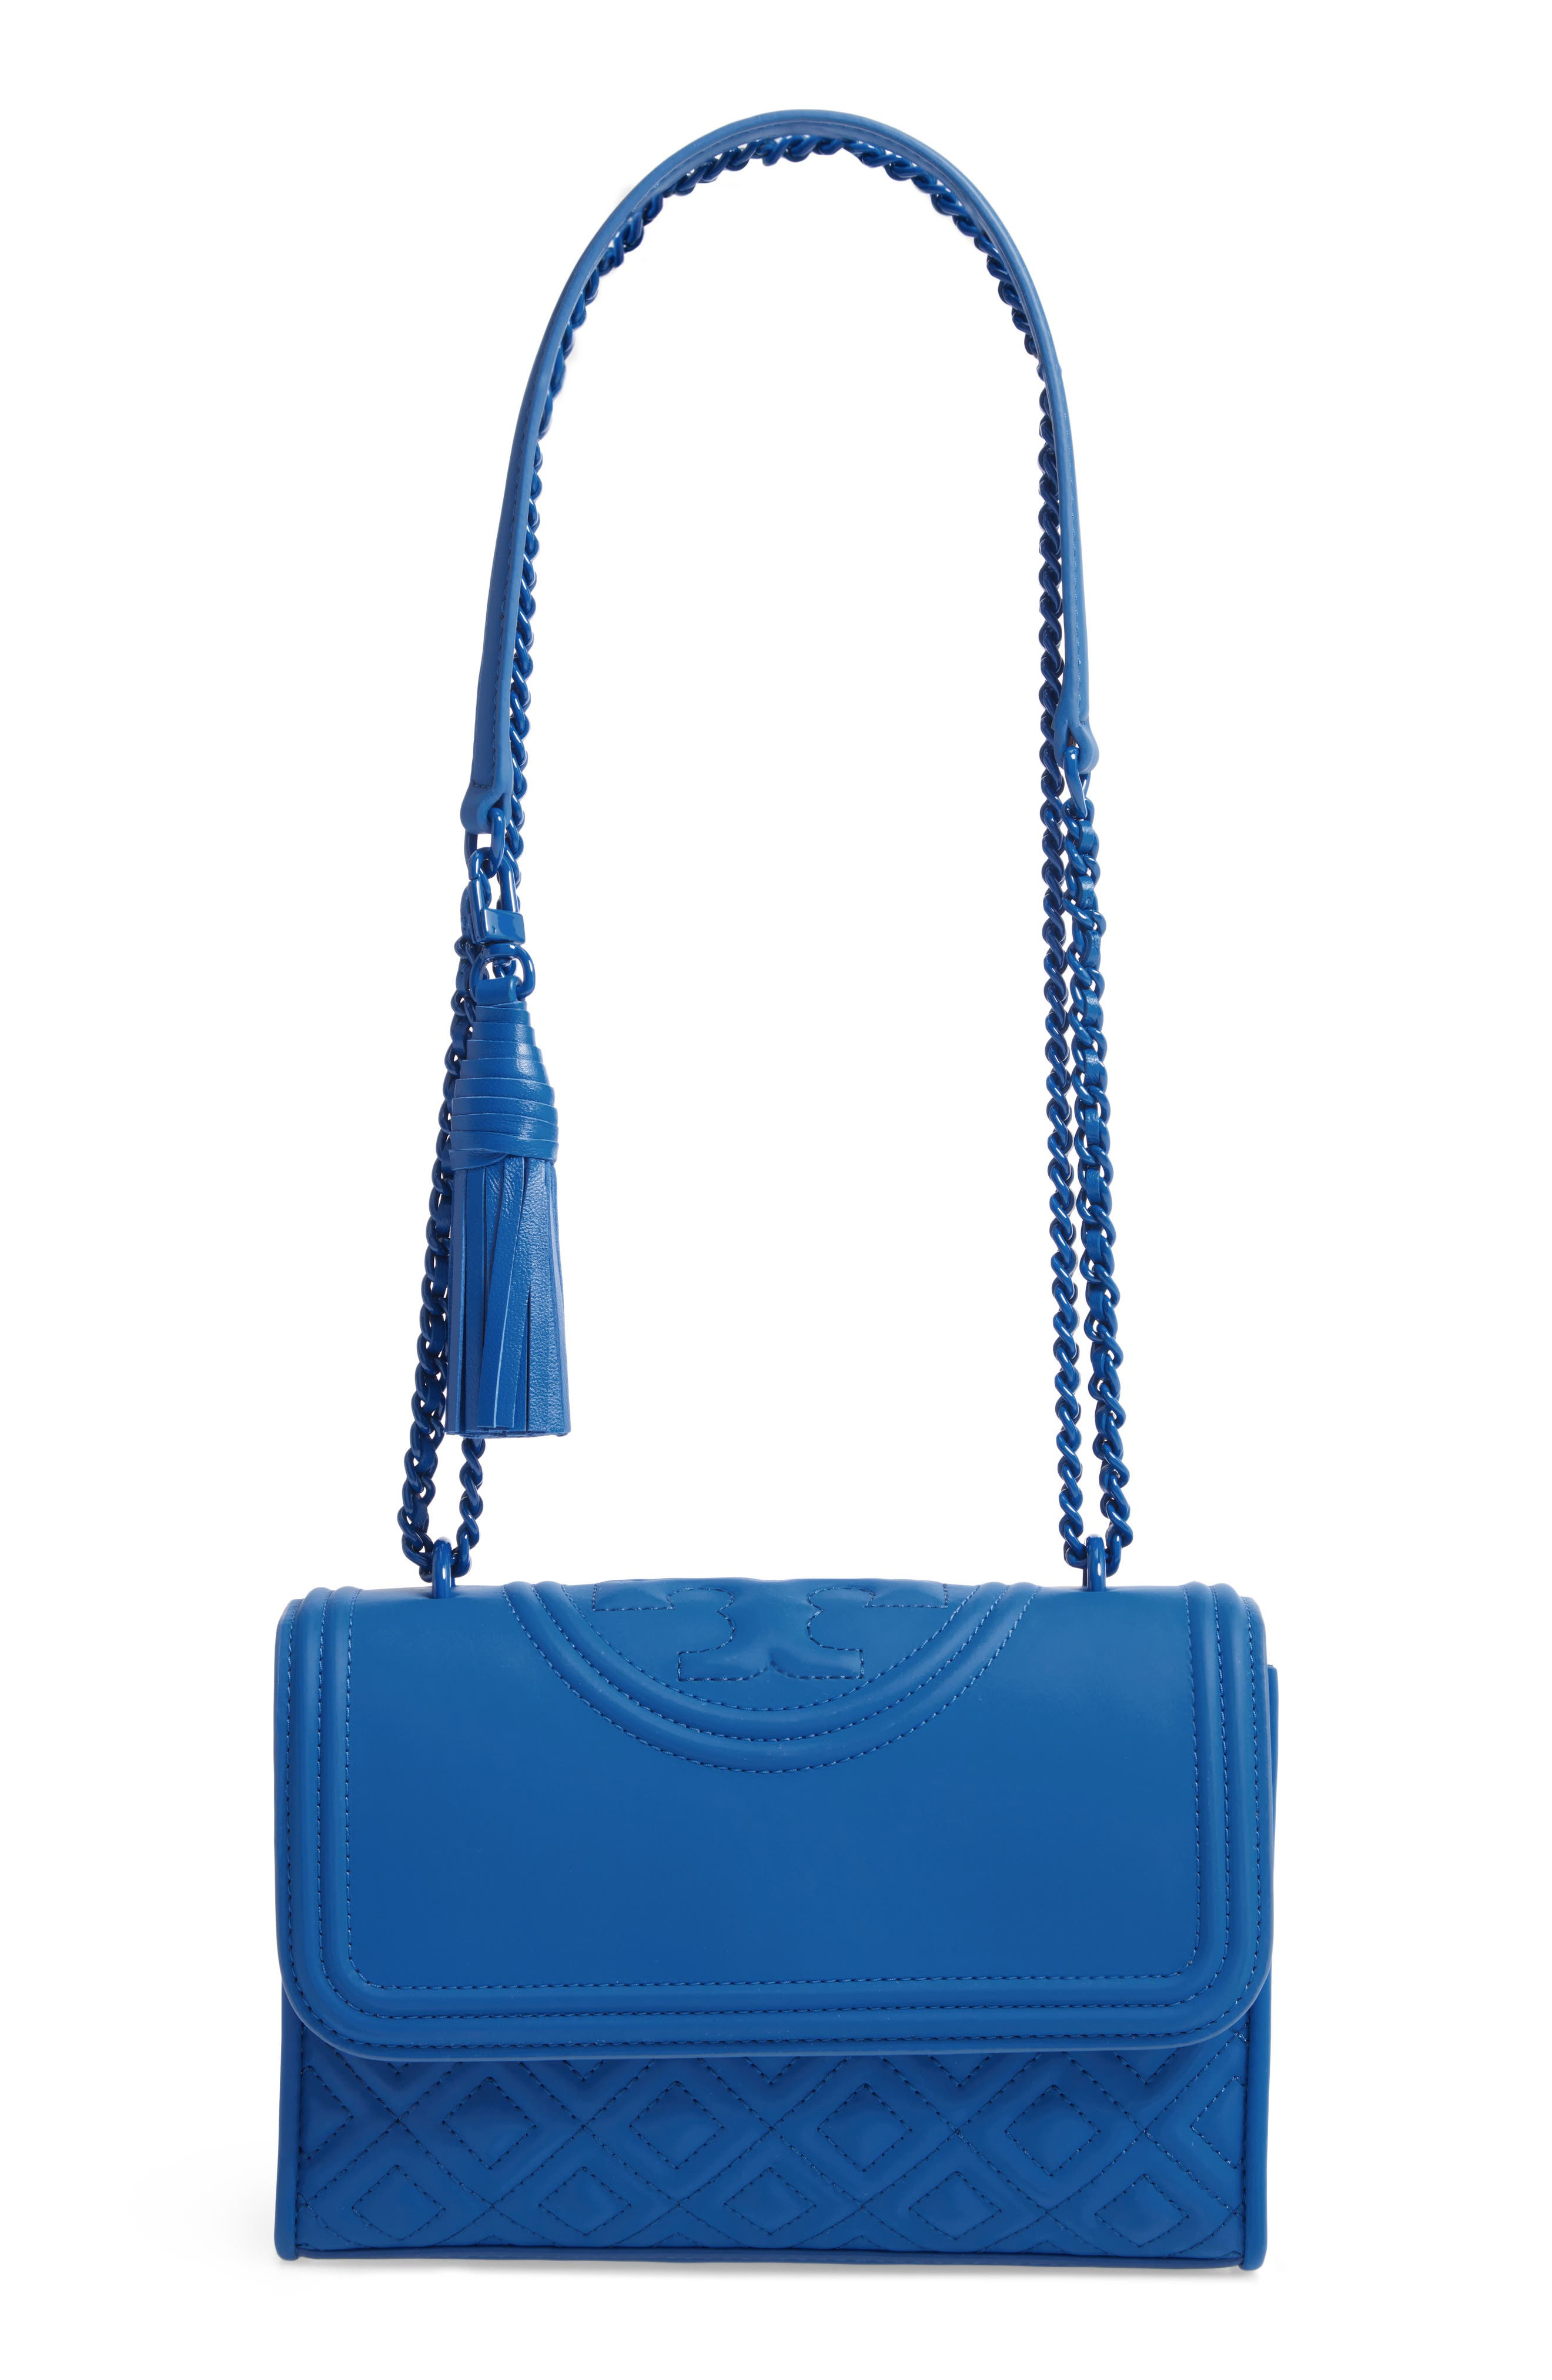 TORY BURCH, Small Fleming Matte Quilted Shoulder Bag, Main thumbnail 1, color, MEDITERRANEAN BLUE